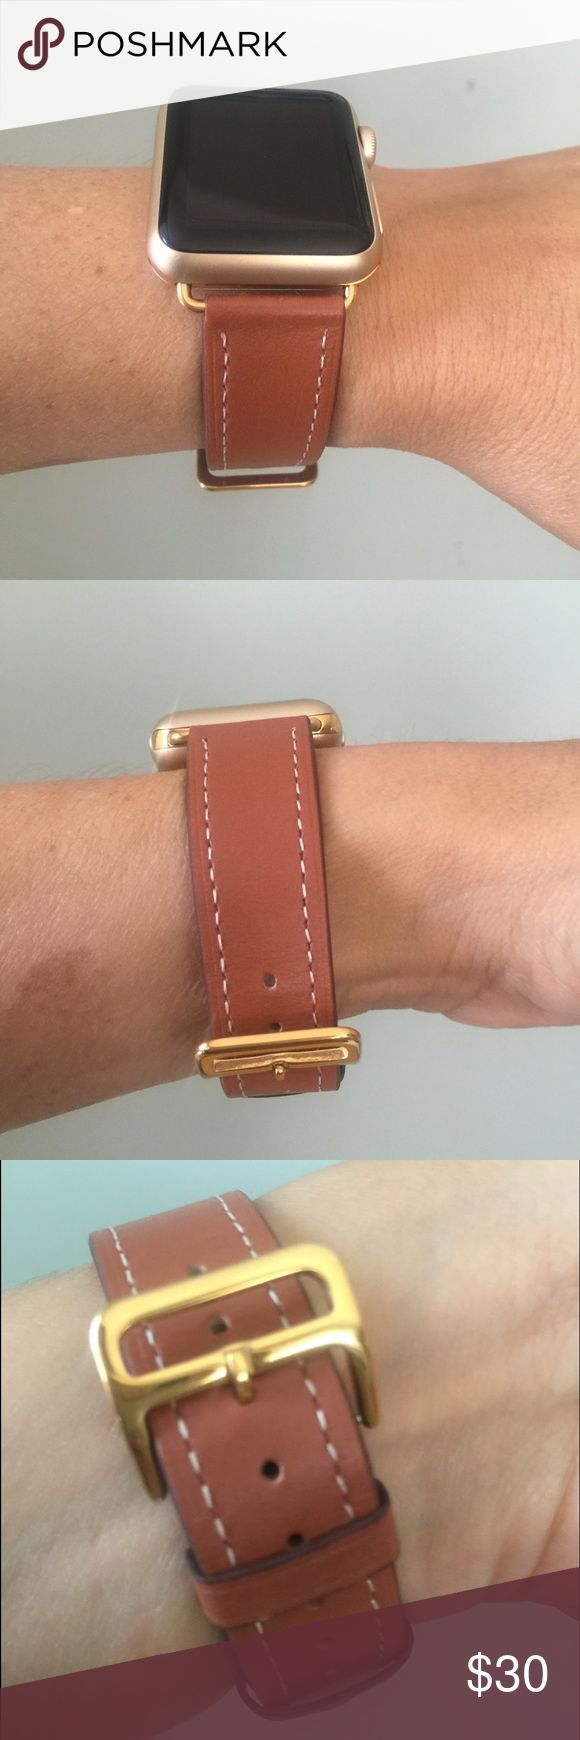 GOLD hardware Apple Watch band, brown leather! ❤️ Brown Apple Watch band with gold hardware.   Single tour band, genuine high quality leather.  It comes in 38mm and 42mm. Please select your size when you purchase. The adapters also fit the Apple Watch Sport.   I also have other band colors, hardware colors and styles in my closet. Check them out!   I offer 15% off if you buy two or more! only the band is for sale; it does not include the watch. Other